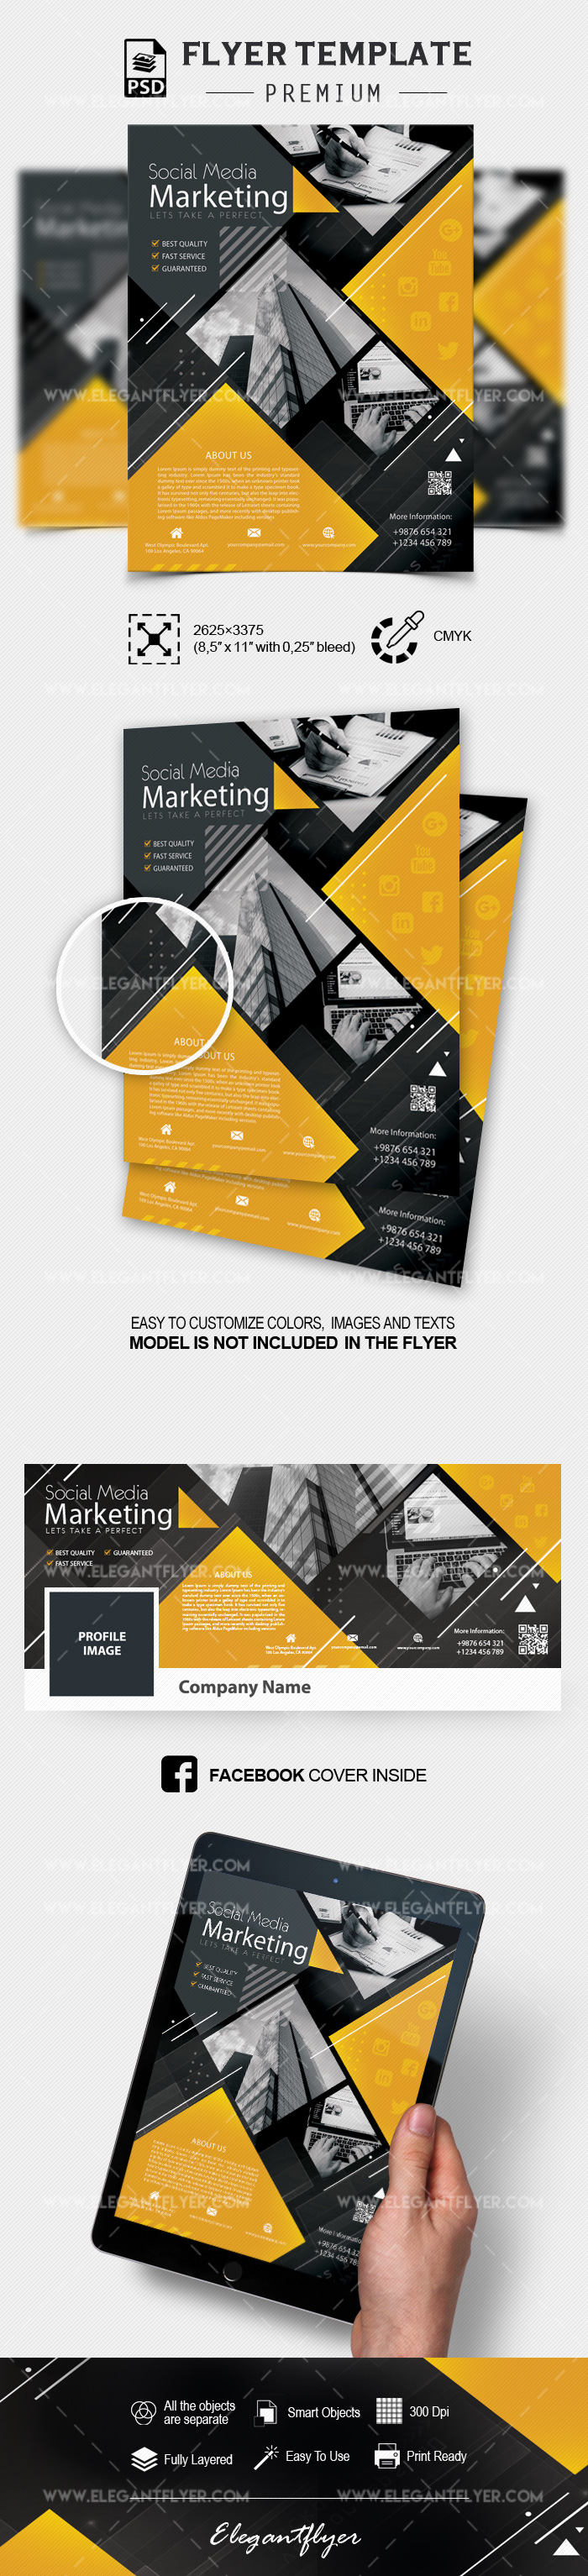 Social Media Marketing – Flyer PSD Template